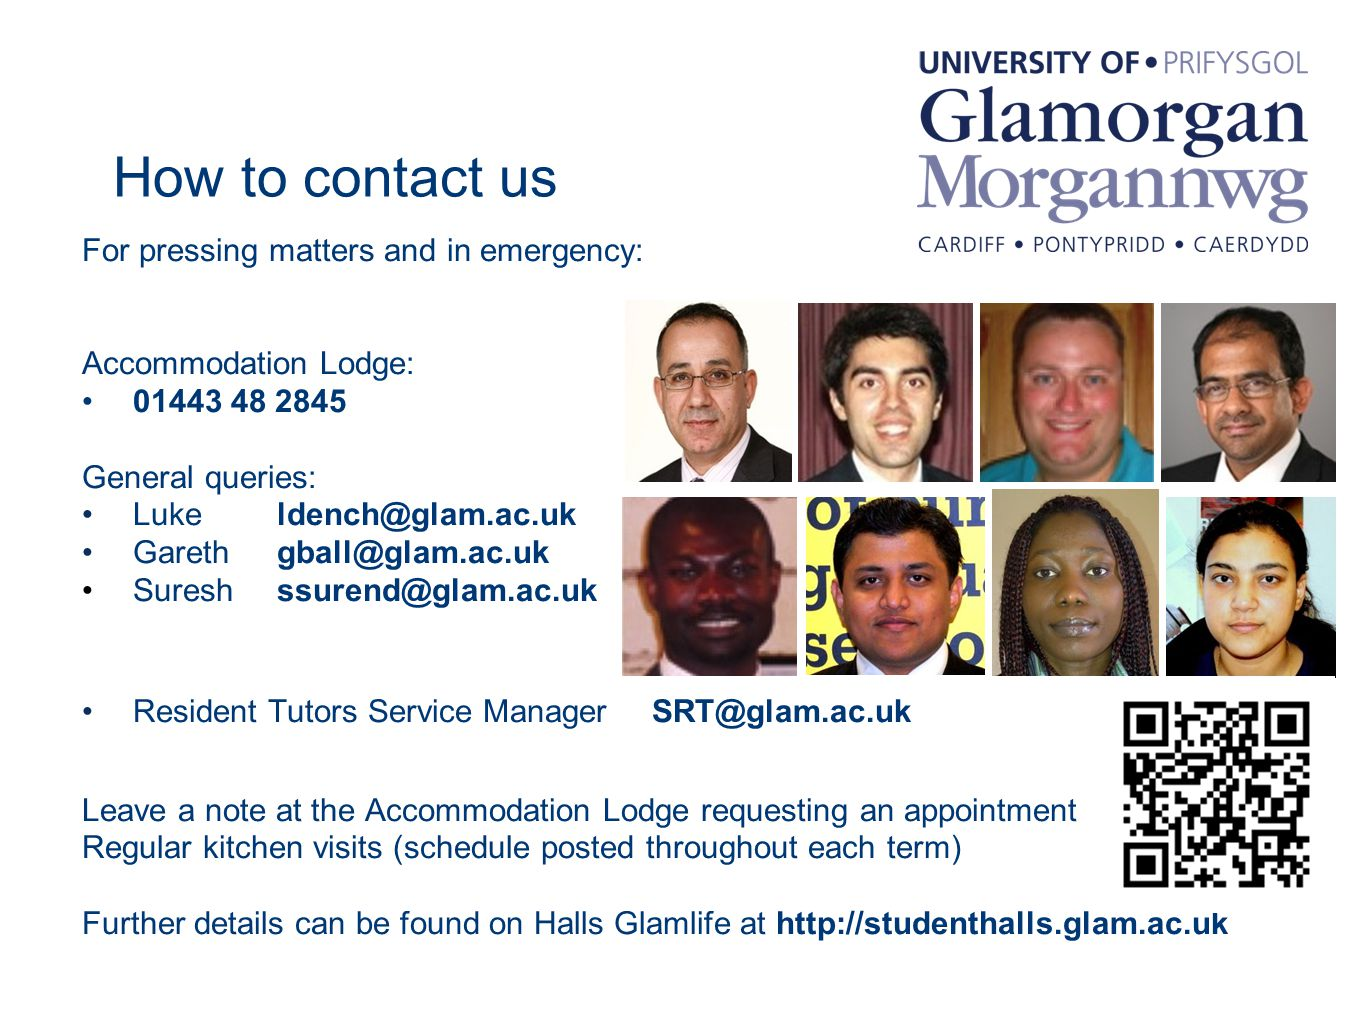 How to contact us For pressing matters and in emergency: Accommodation Lodge: 01443 48 2845 General queries: Luke ldench@glam.ac.uk Gareth gball@glam.ac.uk Suresh ssurend@glam.ac.uk Resident Tutors Service ManagerSRT@glam.ac.uk Leave a note at the Accommodation Lodge requesting an appointment Regular kitchen visits (schedule posted throughout each term) Further details can be found on Halls Glamlife at http://studenthalls.glam.ac.uk